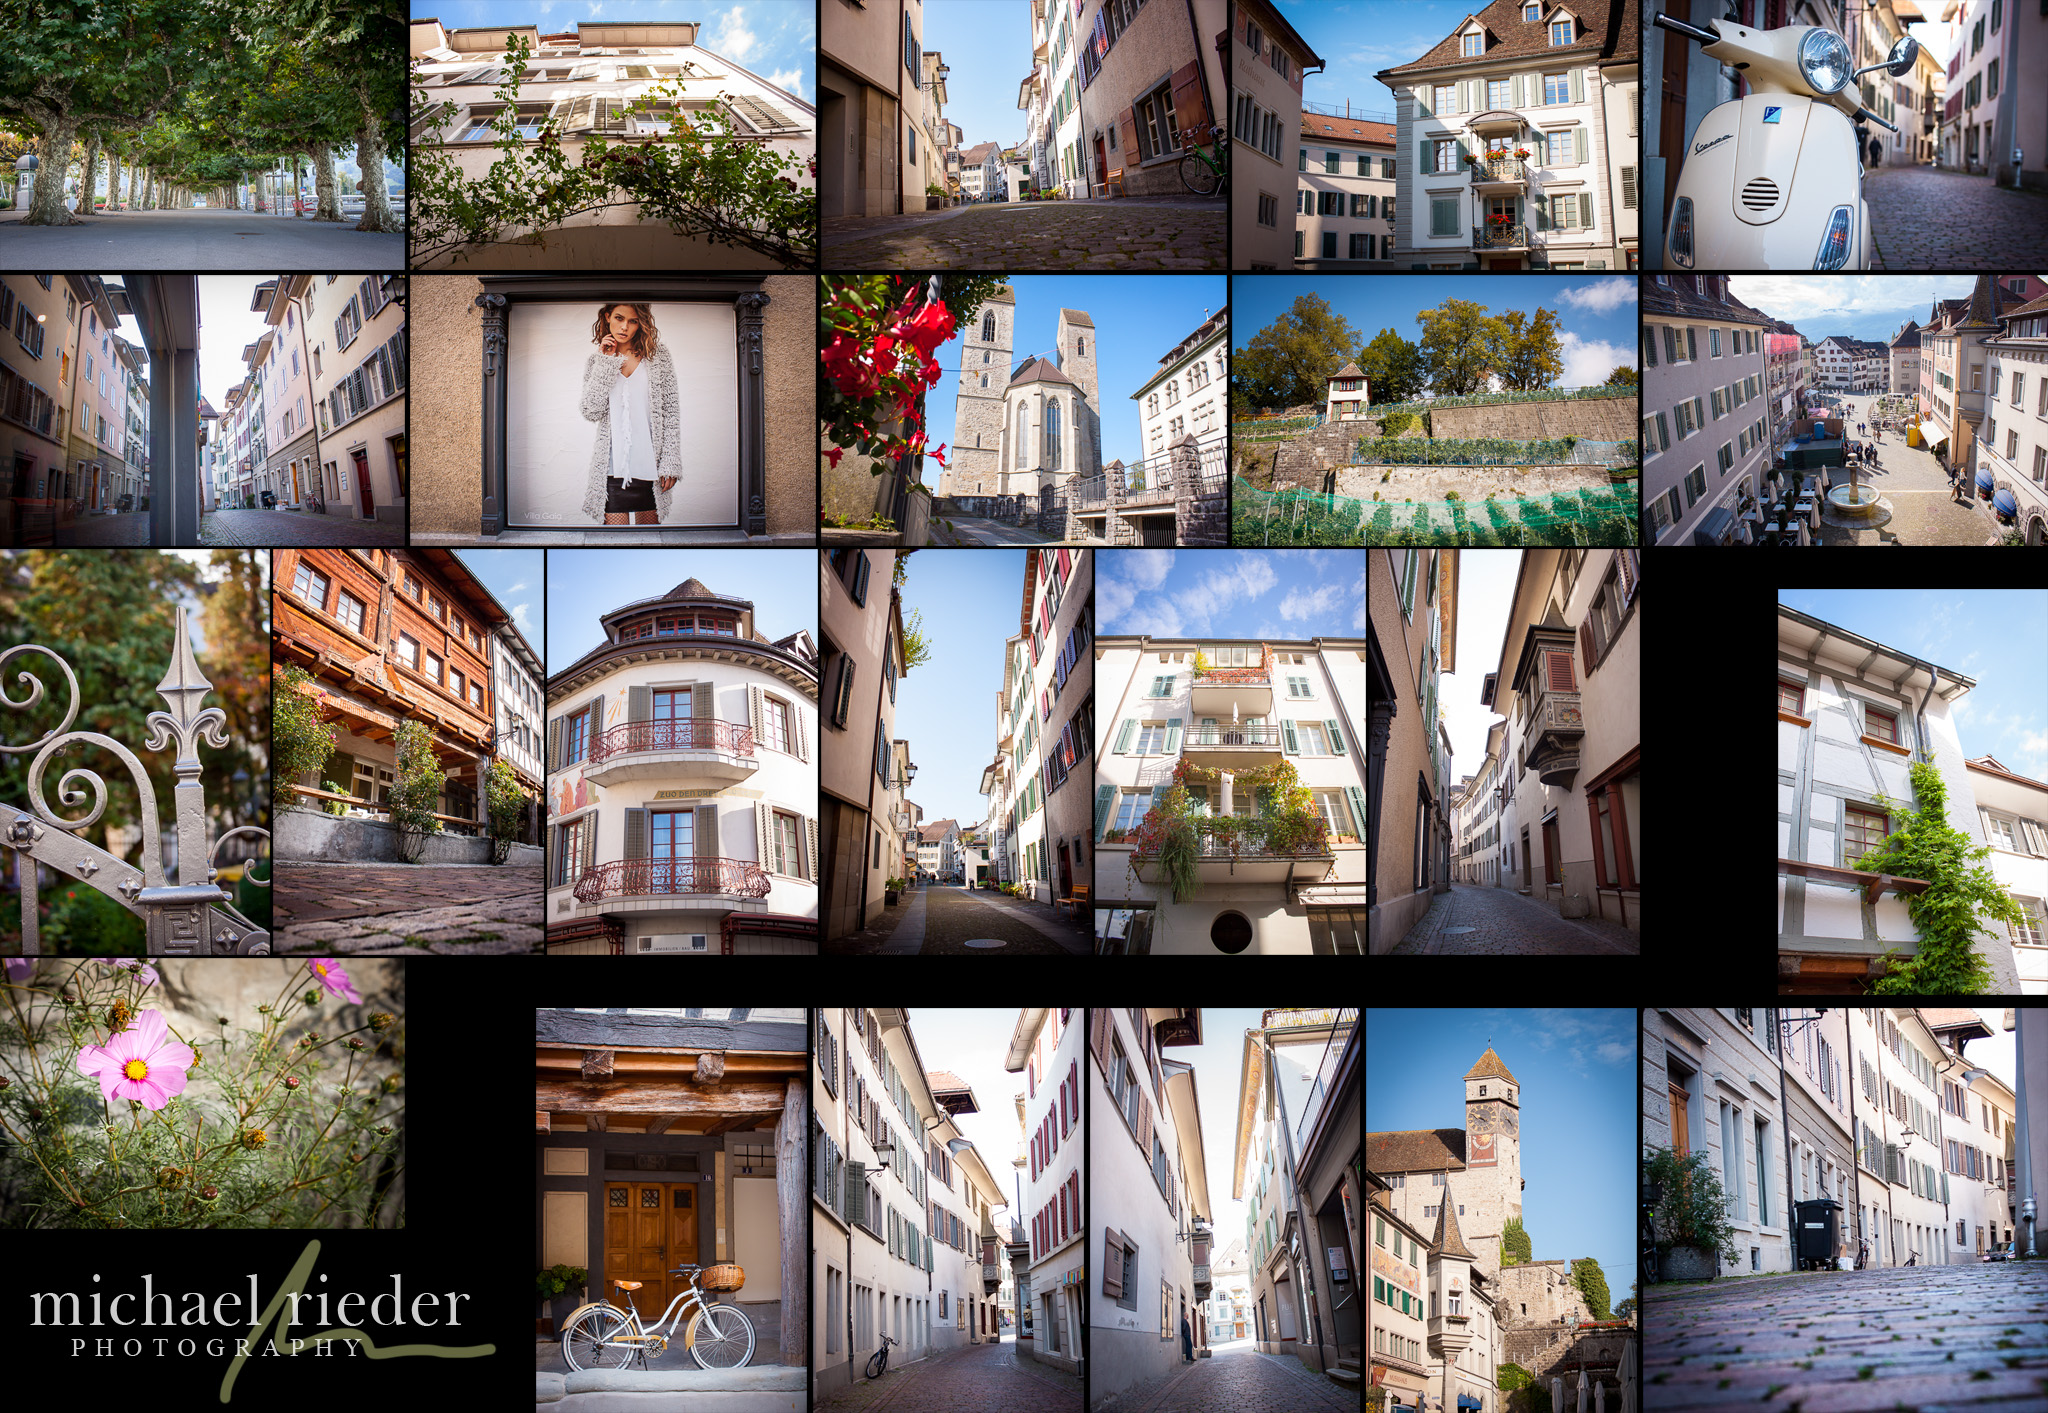 Photo-Walk-Talk Rapperswil, Collage aus einigen Impressionen | Michael Rieder Photography